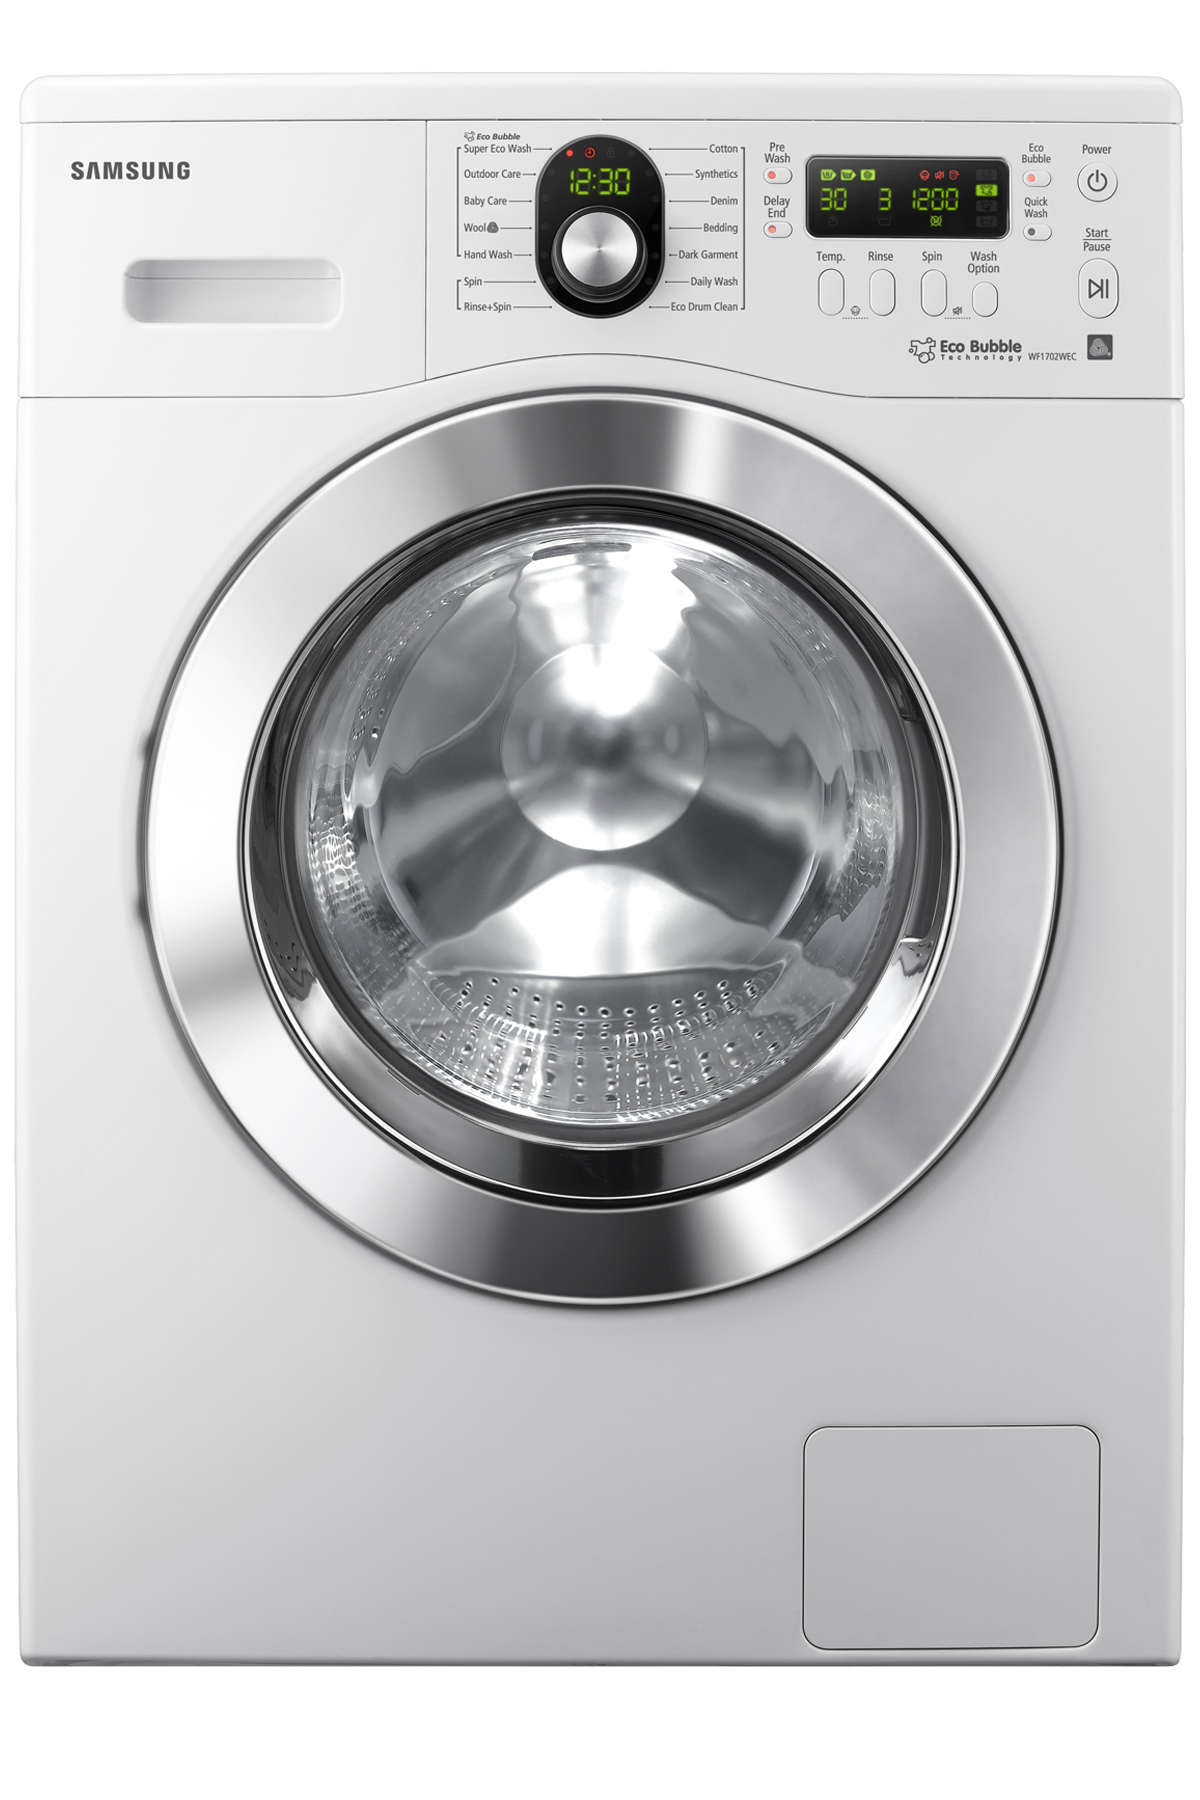 AEGIS BUBBLE Washer with Eco Bubble, 7 kg